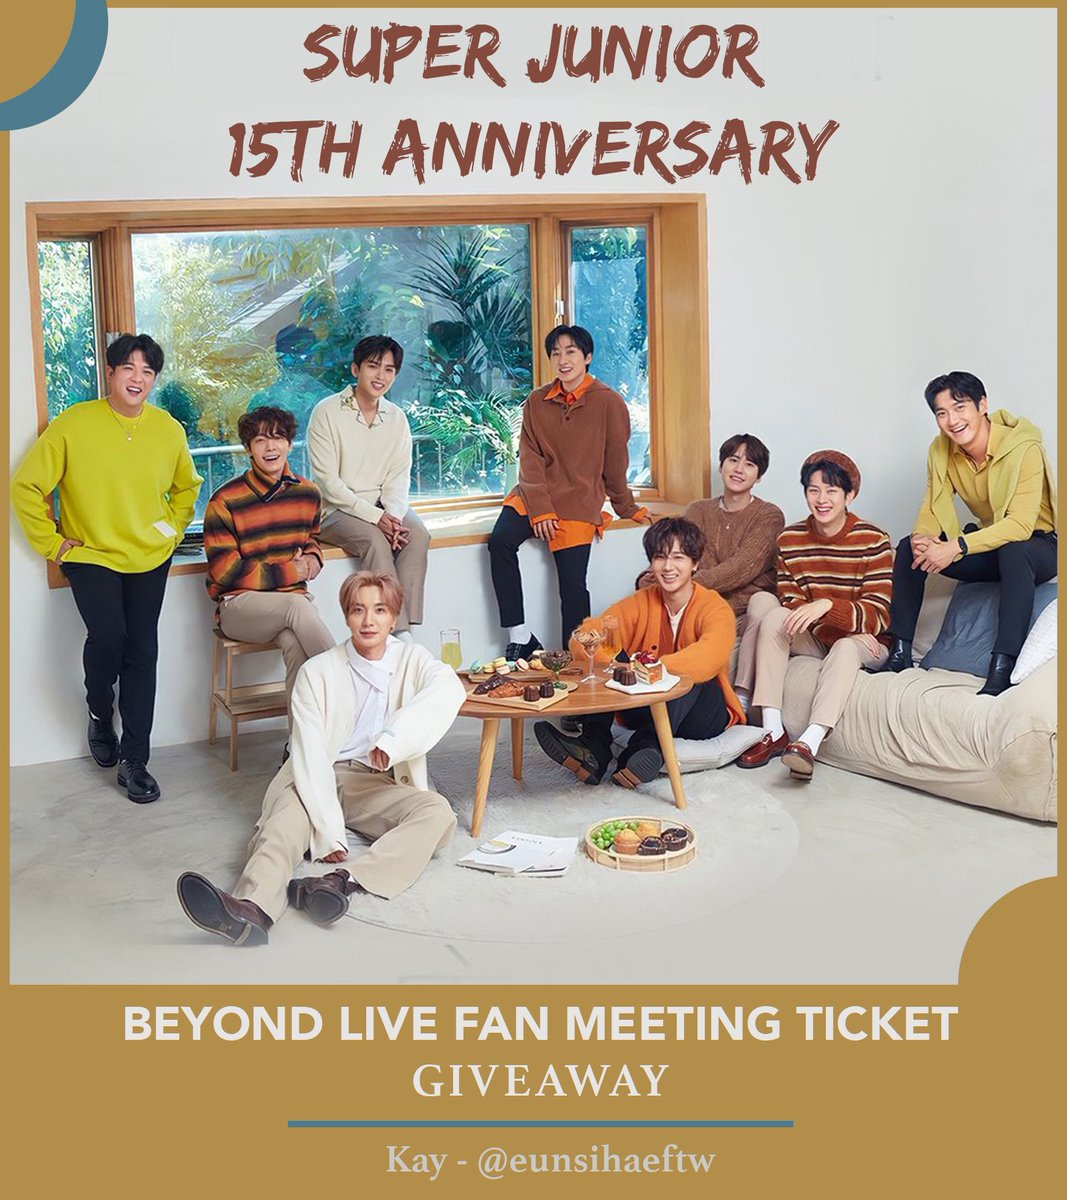 🌅BONUS D-11 Anniv GA marathon🌄  🎁 no 3 :  Beyond Live Fanmeeting event ticket💫  💙Read Rules‼️ 💙tag @SJofficial & 3 of your friends. 💙Open WW 💙2 Winners for Live Streaming & 3 runner-ups for VOD  Ends : Wed 4th Nov 11:59 PM KST ✨ #15thAnniv_WalkTogether  #SUPERJUNIOR https://t.co/jW7QRLWf1B